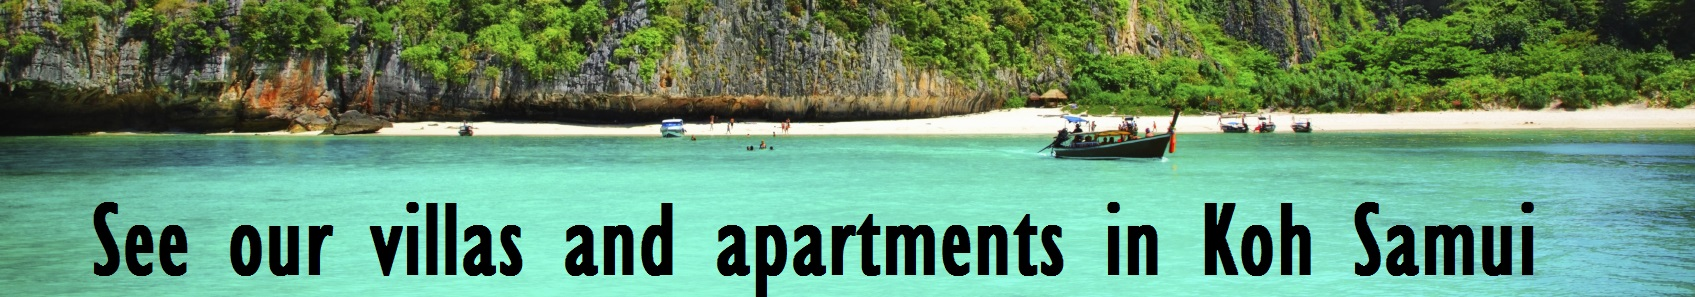 villas and apartments in Koh Samui